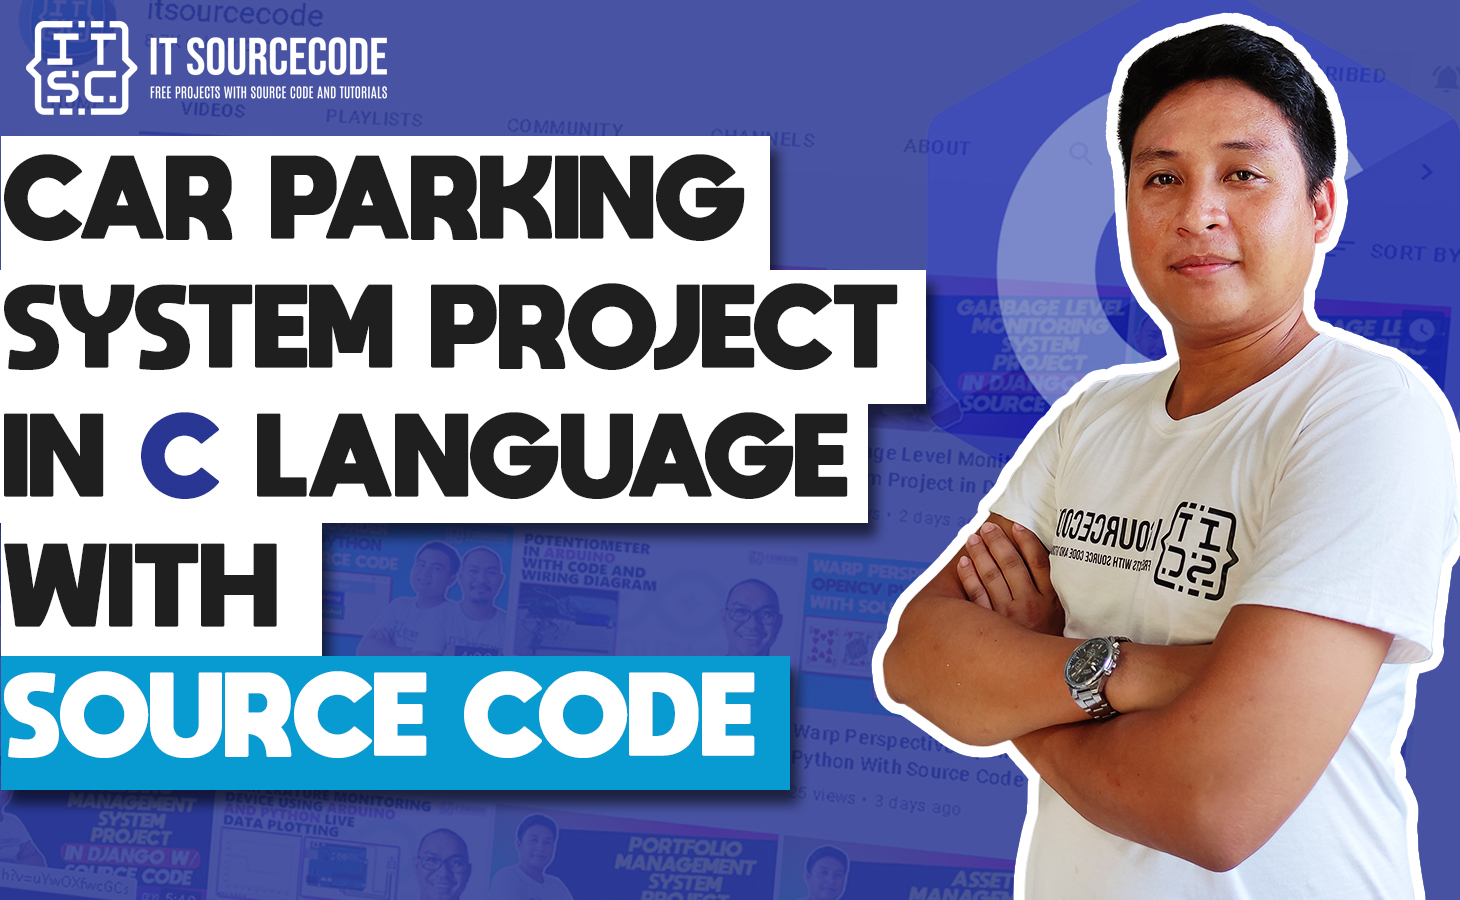 Car Parking System Project in C Language with Source Code